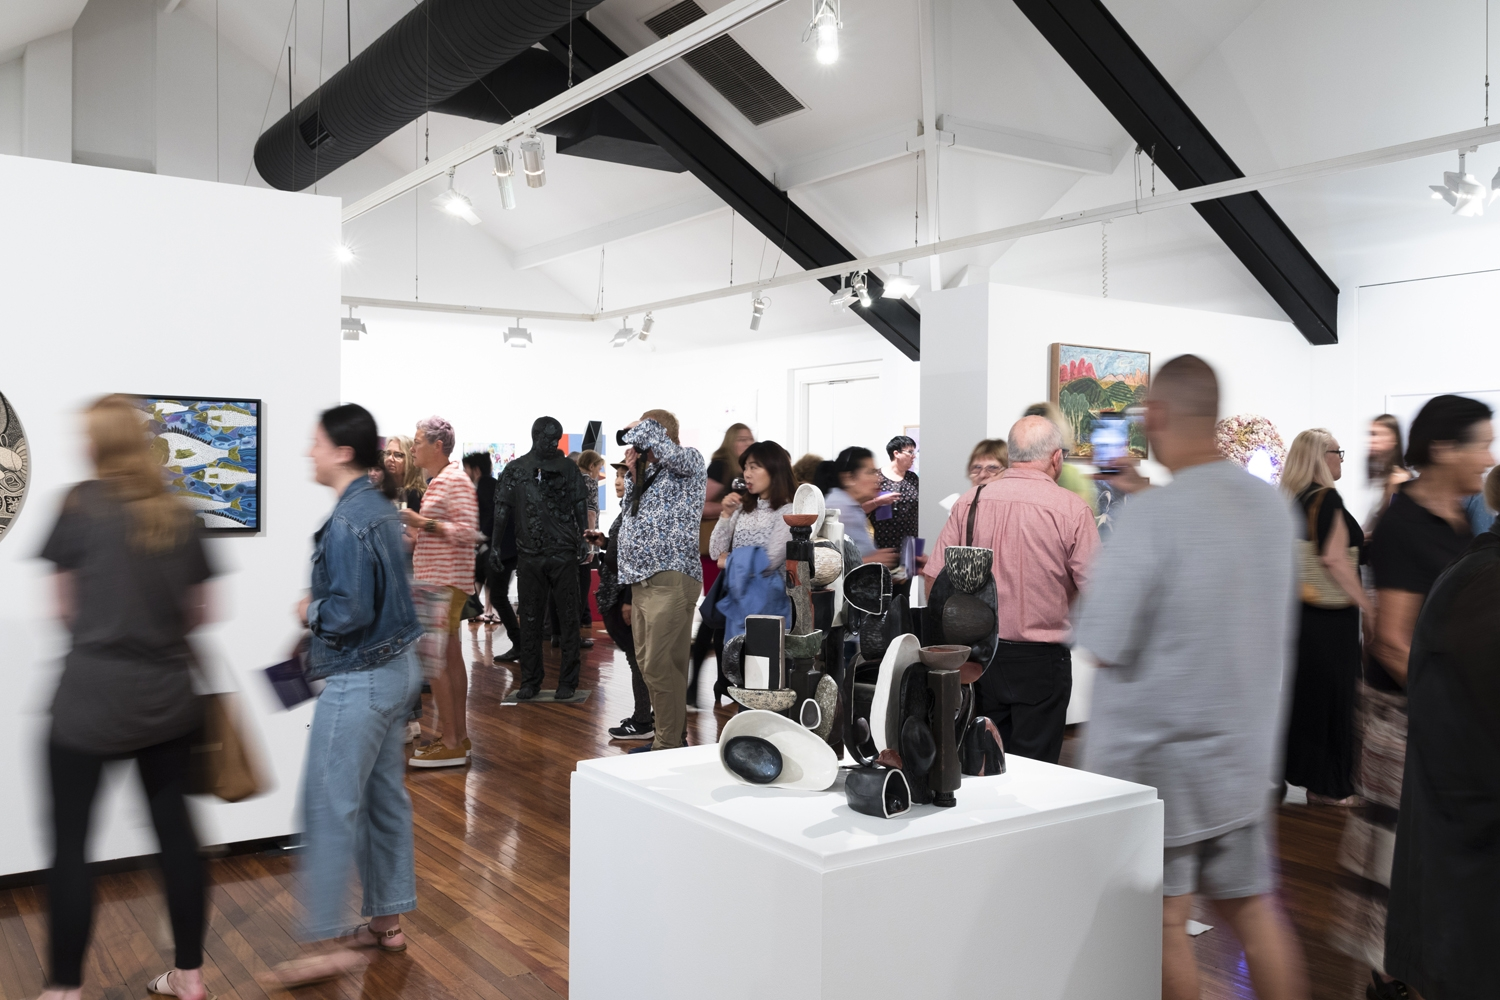 A crowd of people moving through a gallery space during an exhibition